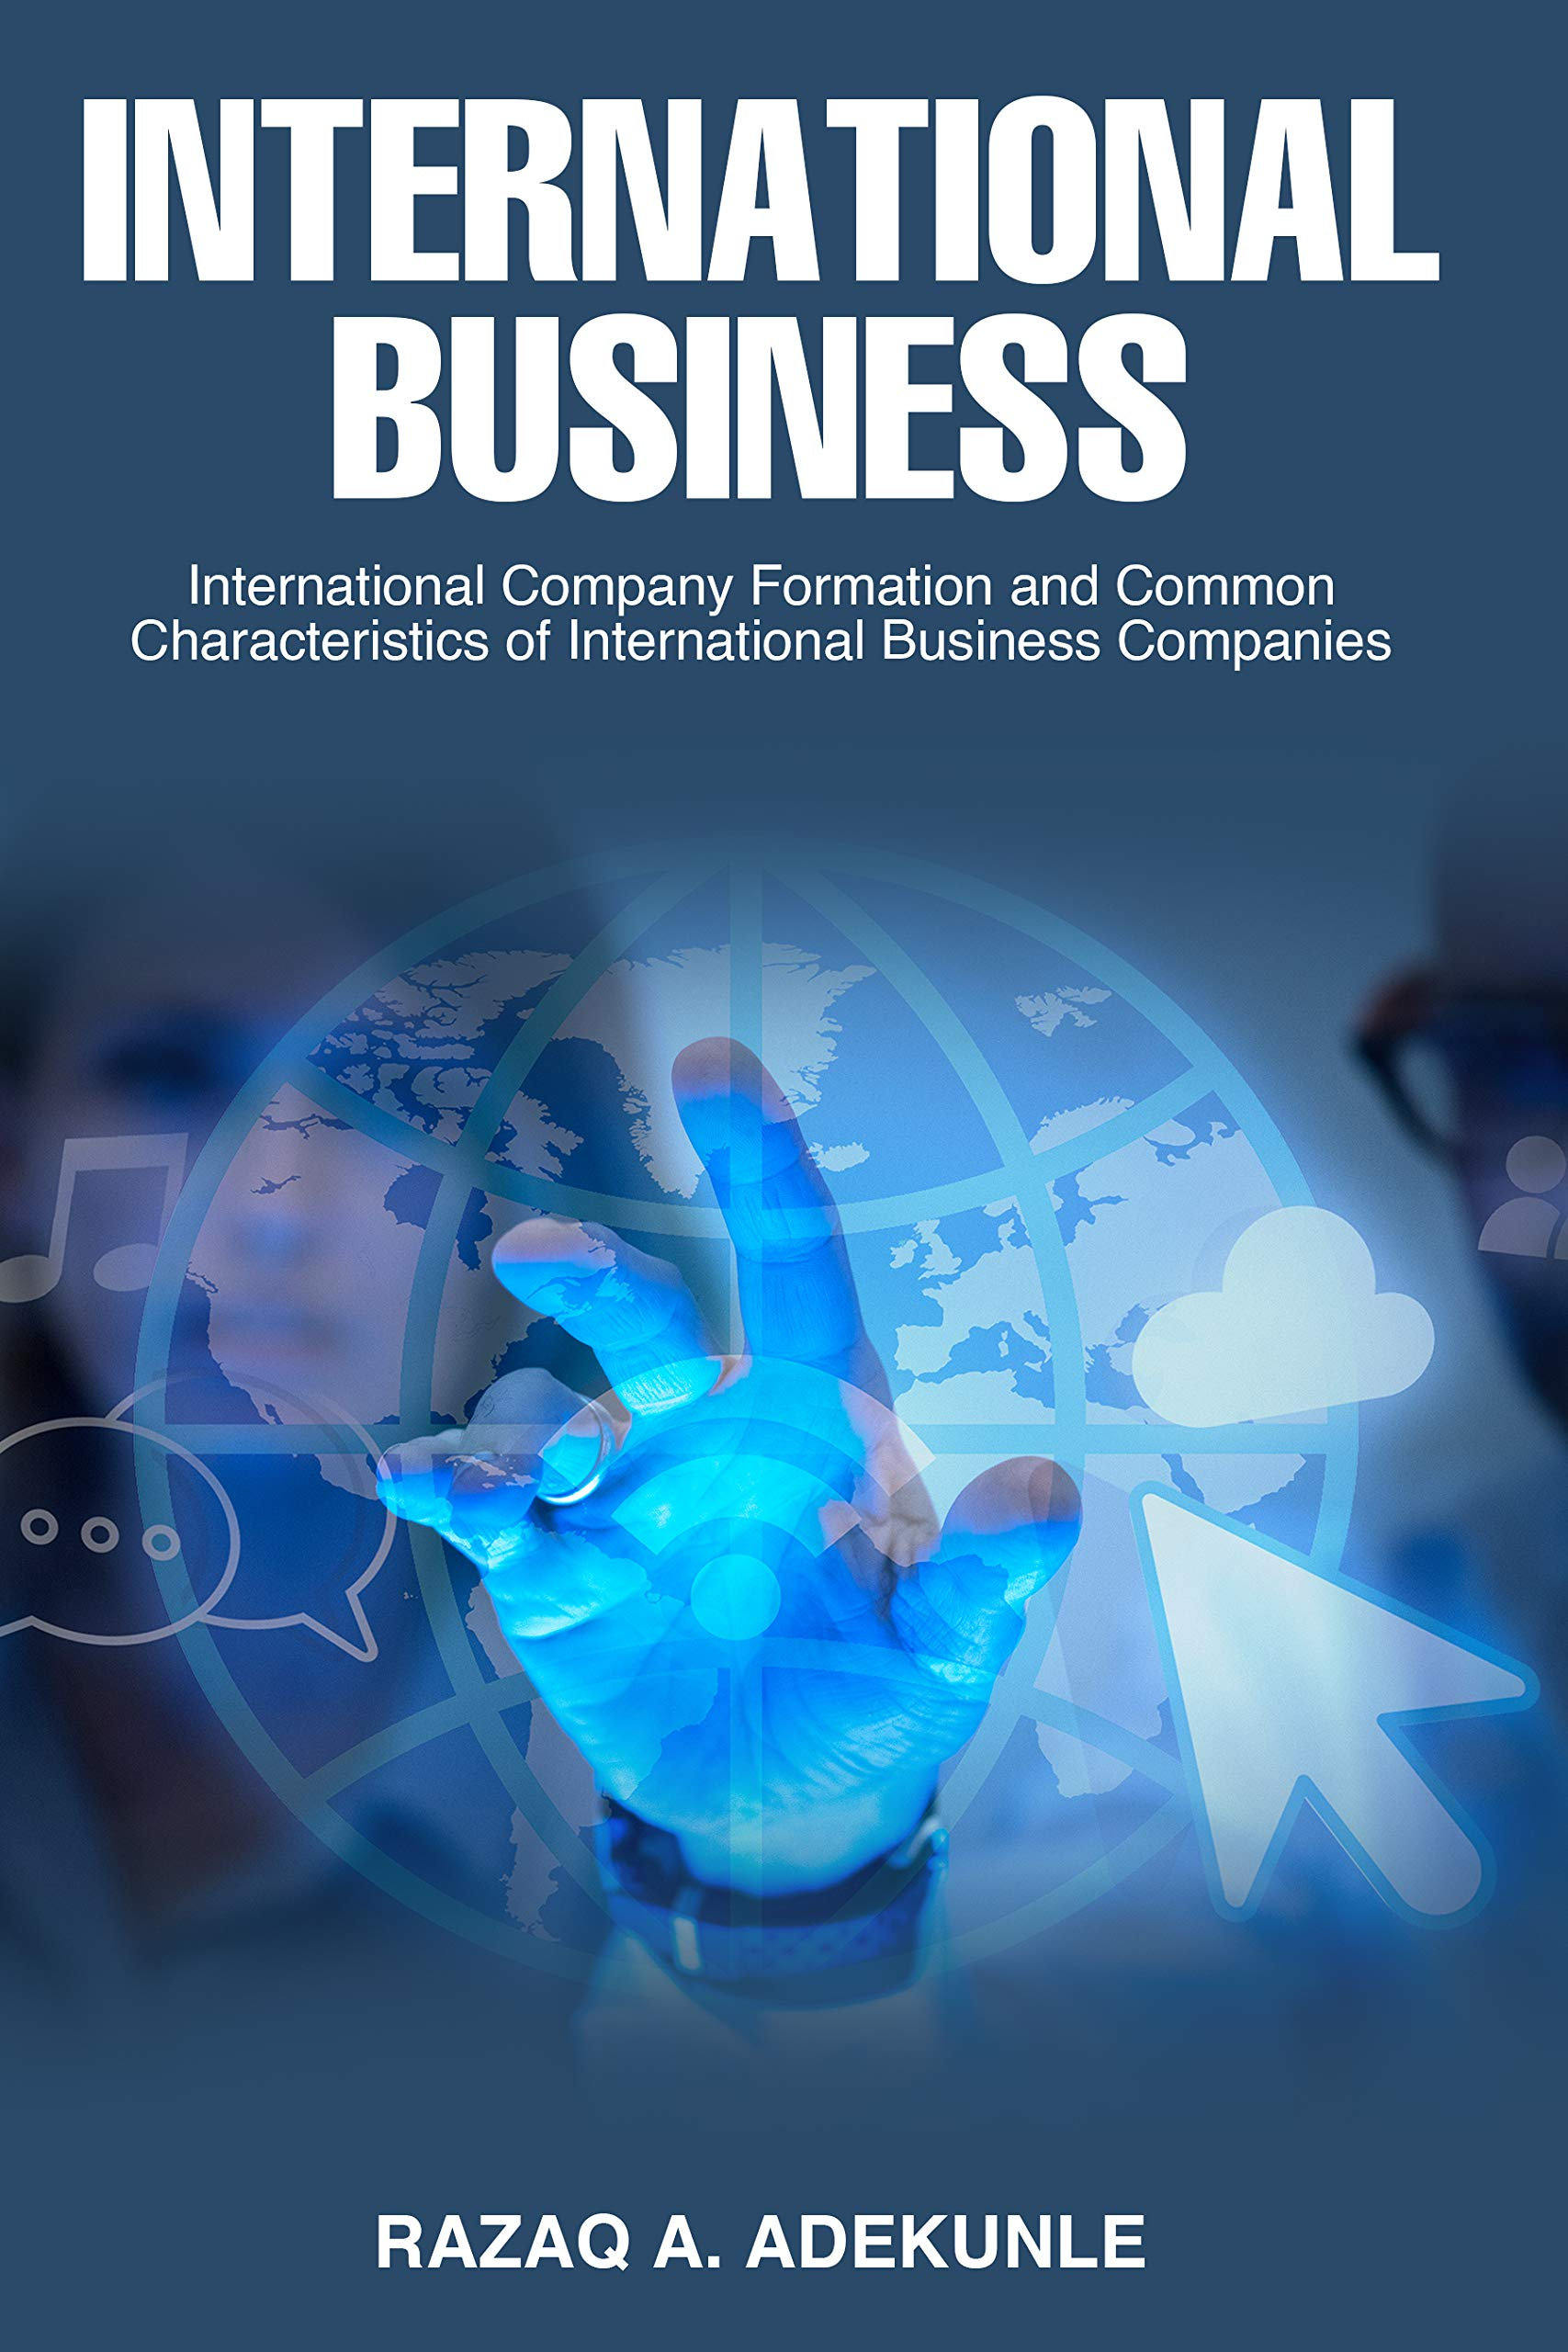 International Business: International Company Formation and Common Characteristics of International Business Companies